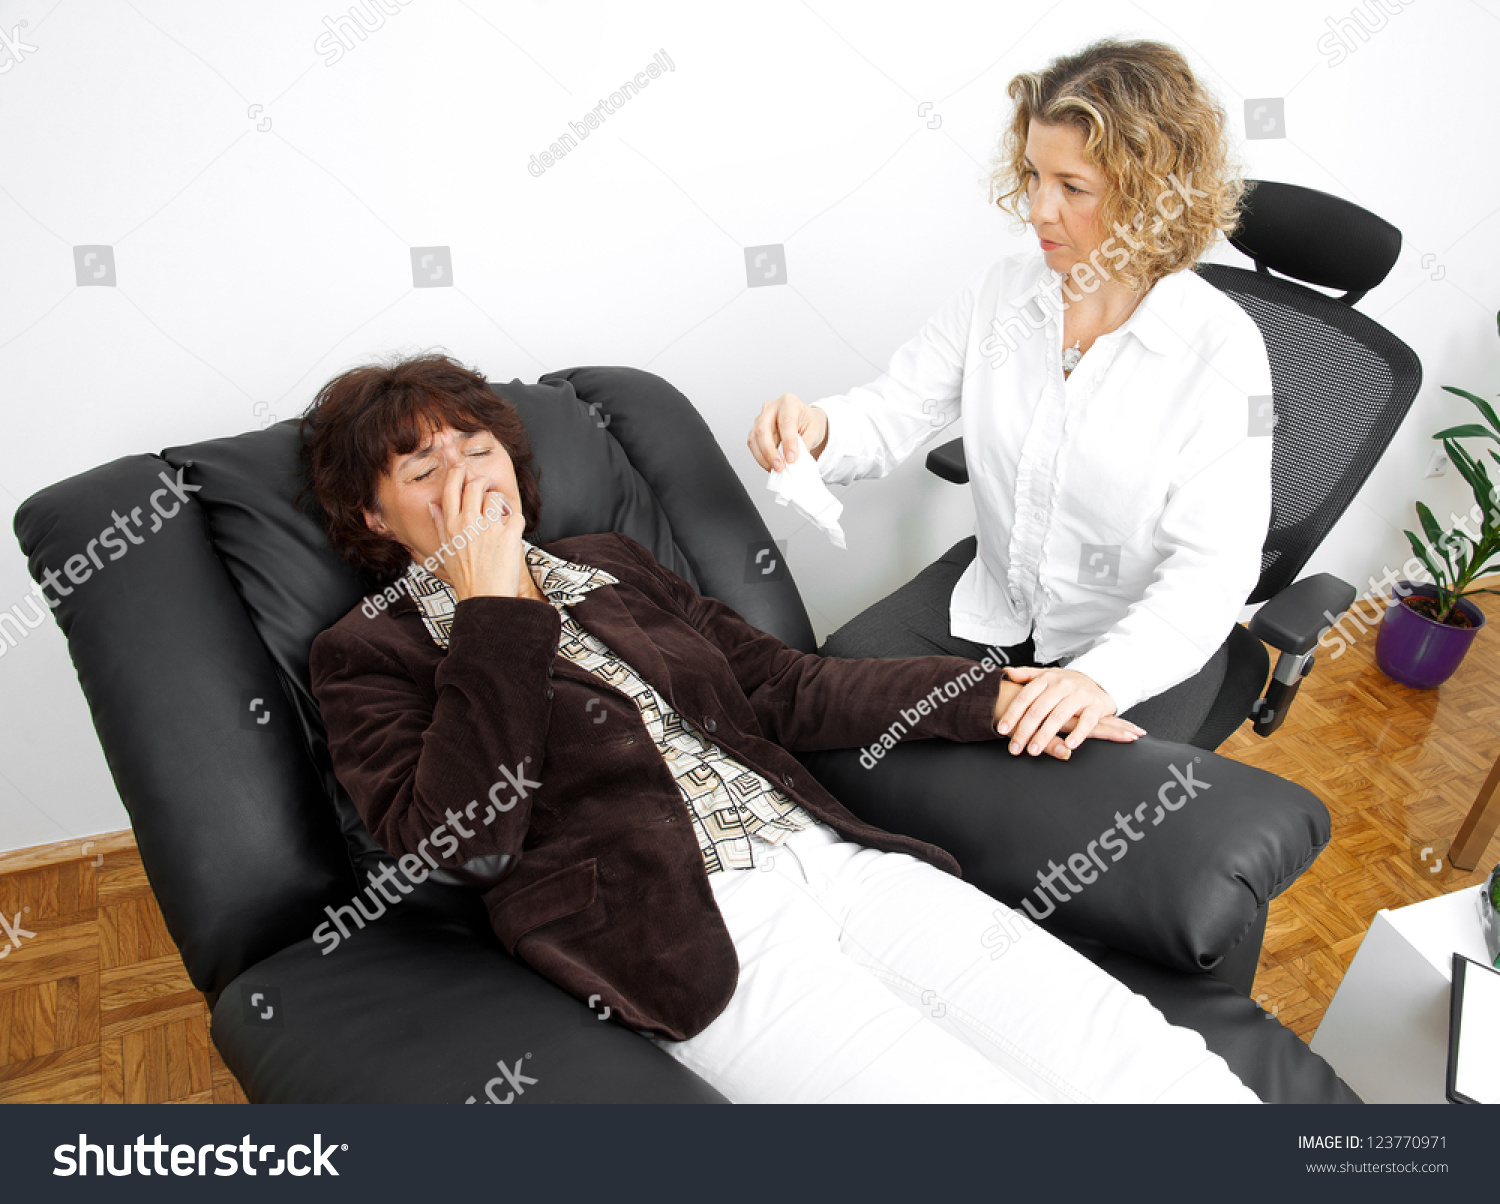 Psychiatrist Chair Upset Mature Woman Therapy Laying Psychiatrist Stock Photo